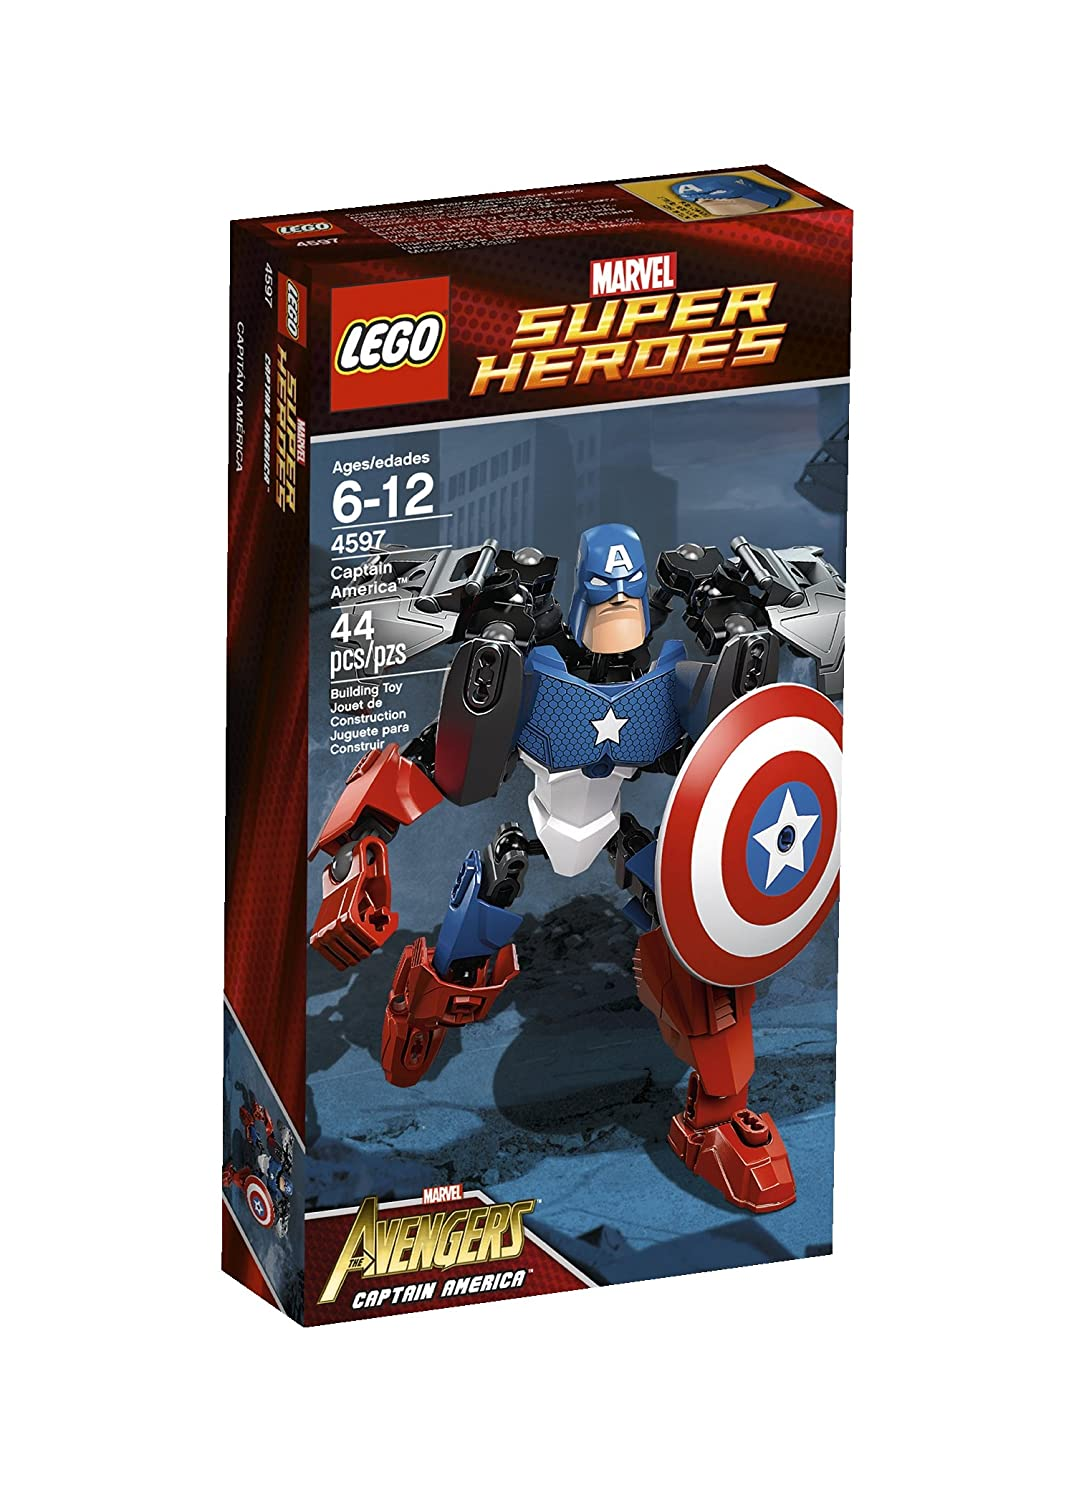 Top 9 Best LEGO Captain America Sets Reviews in 2019 2